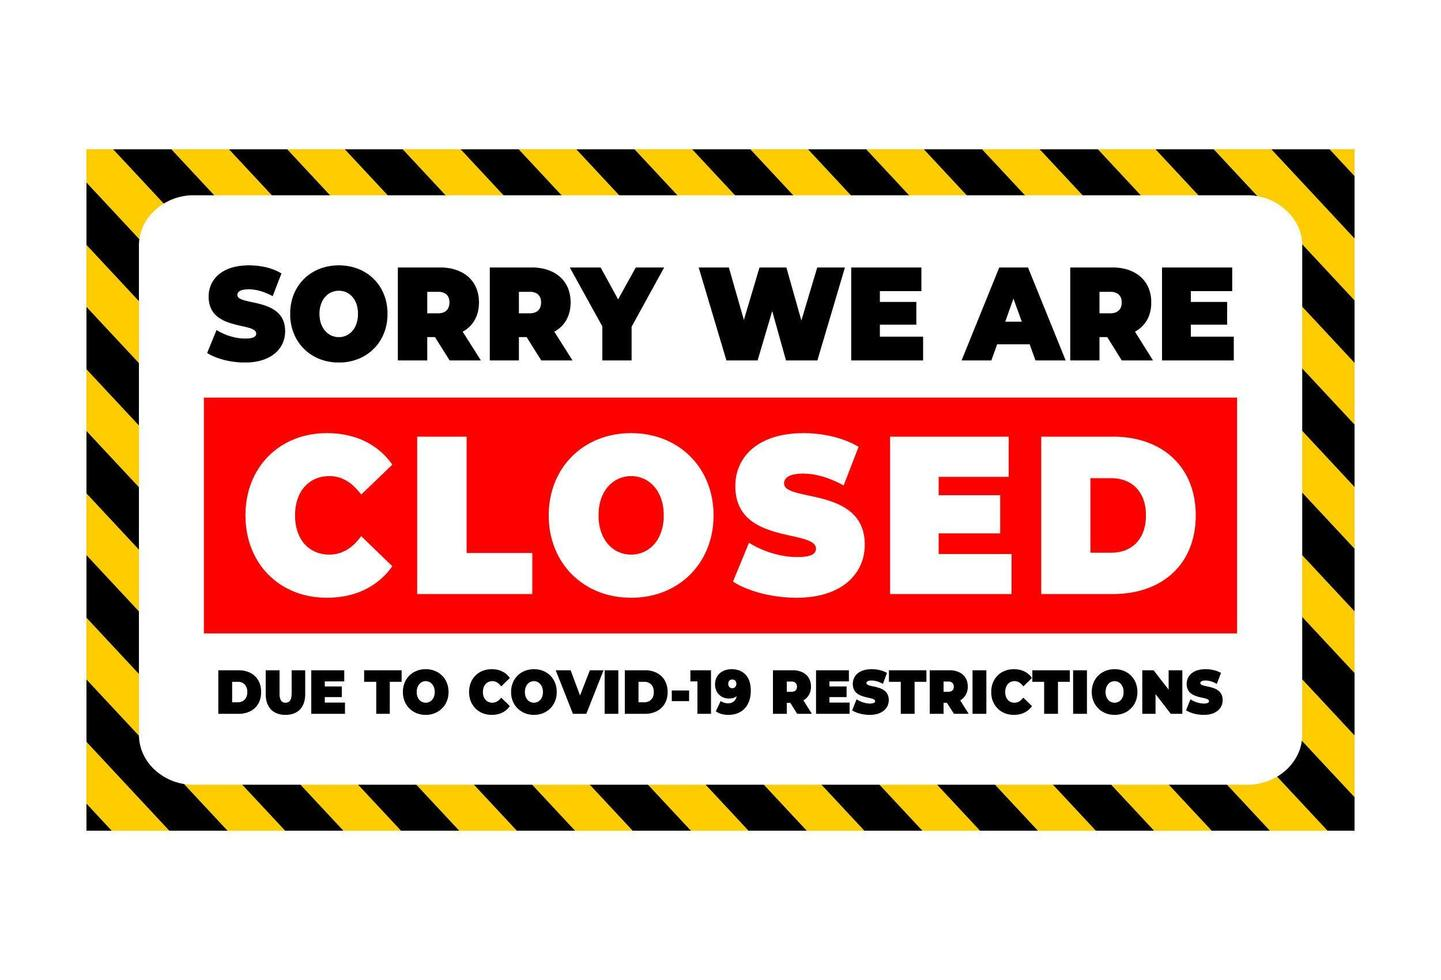 temporarily closed due to covid restrictions vector